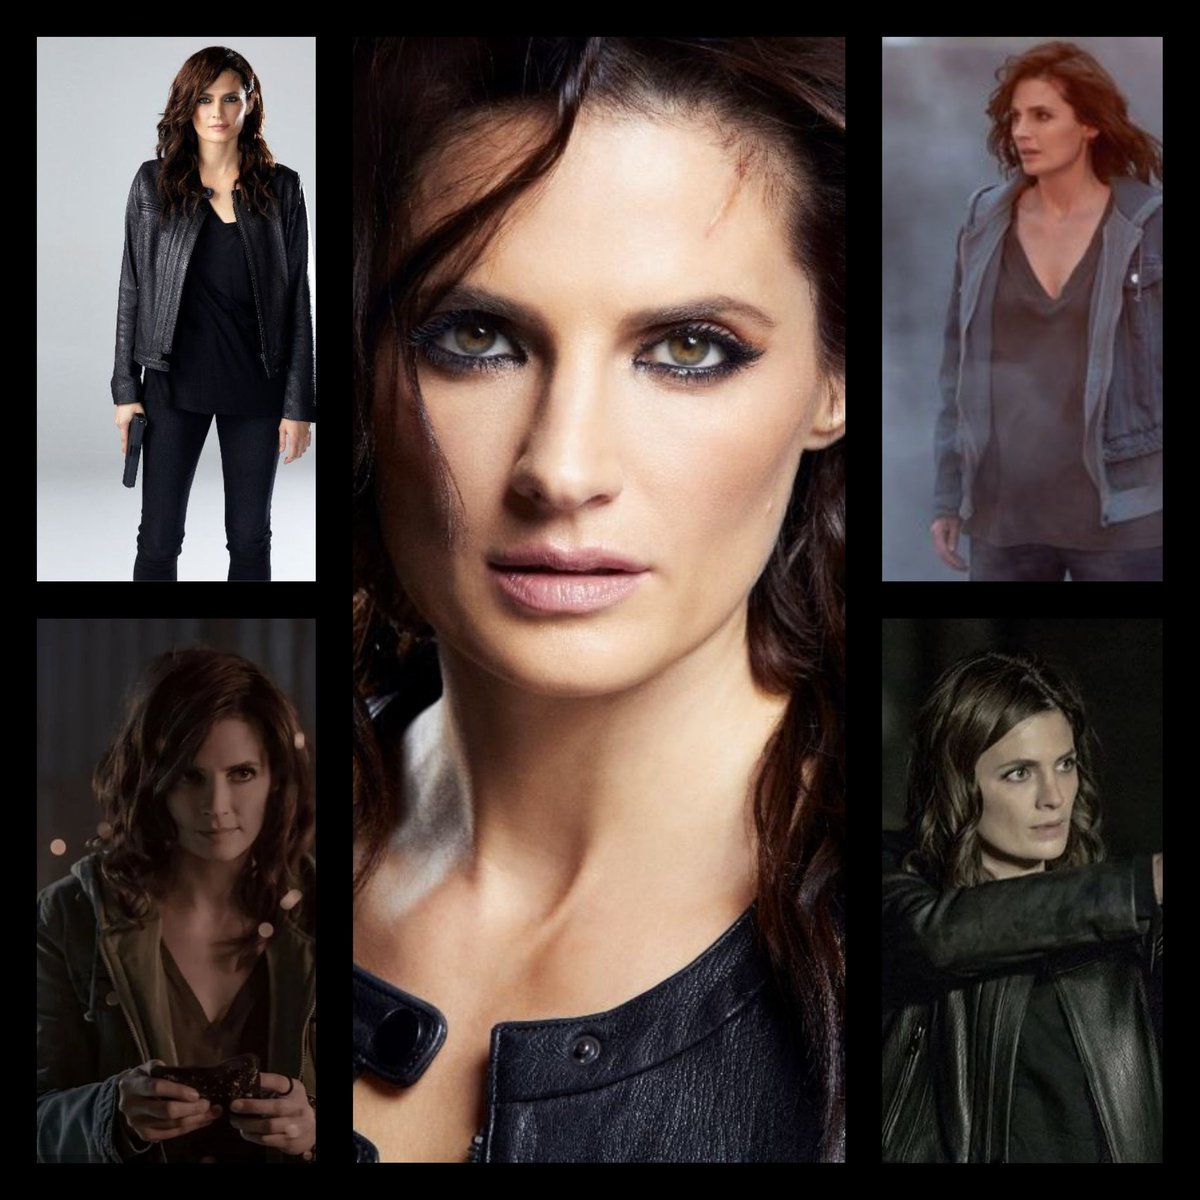 Good morning #Castle Fans!  It's Tuesday and we send you in a new summer day with our lovely @Stana_Katic ! The next days will be hot here in Germany!